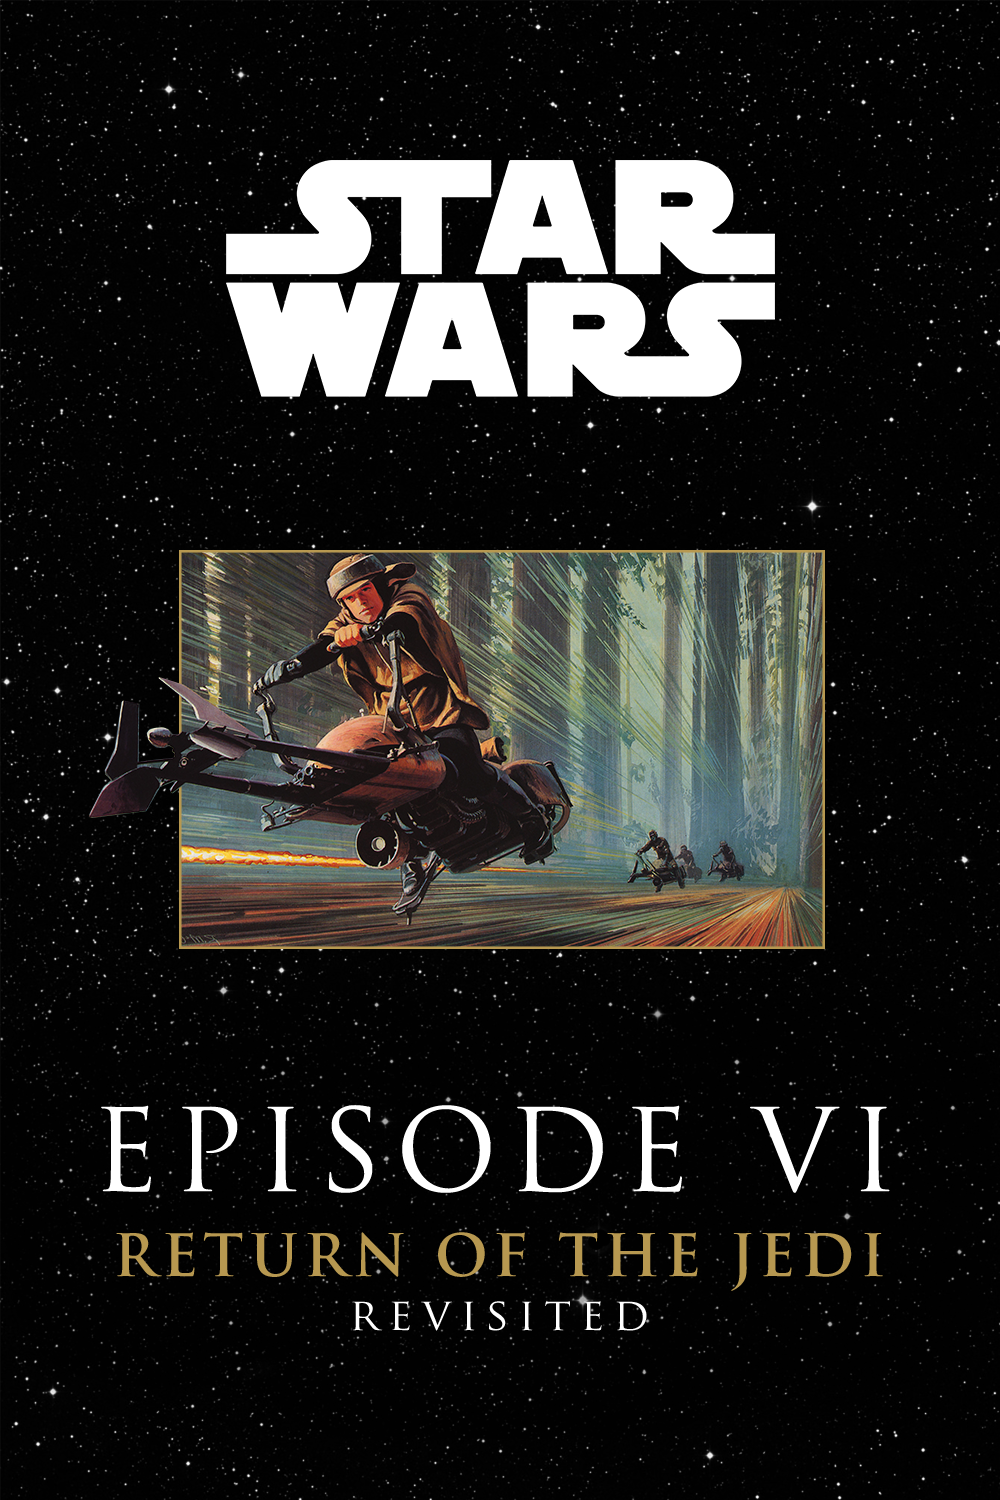 Star Wars Revisited VI.png